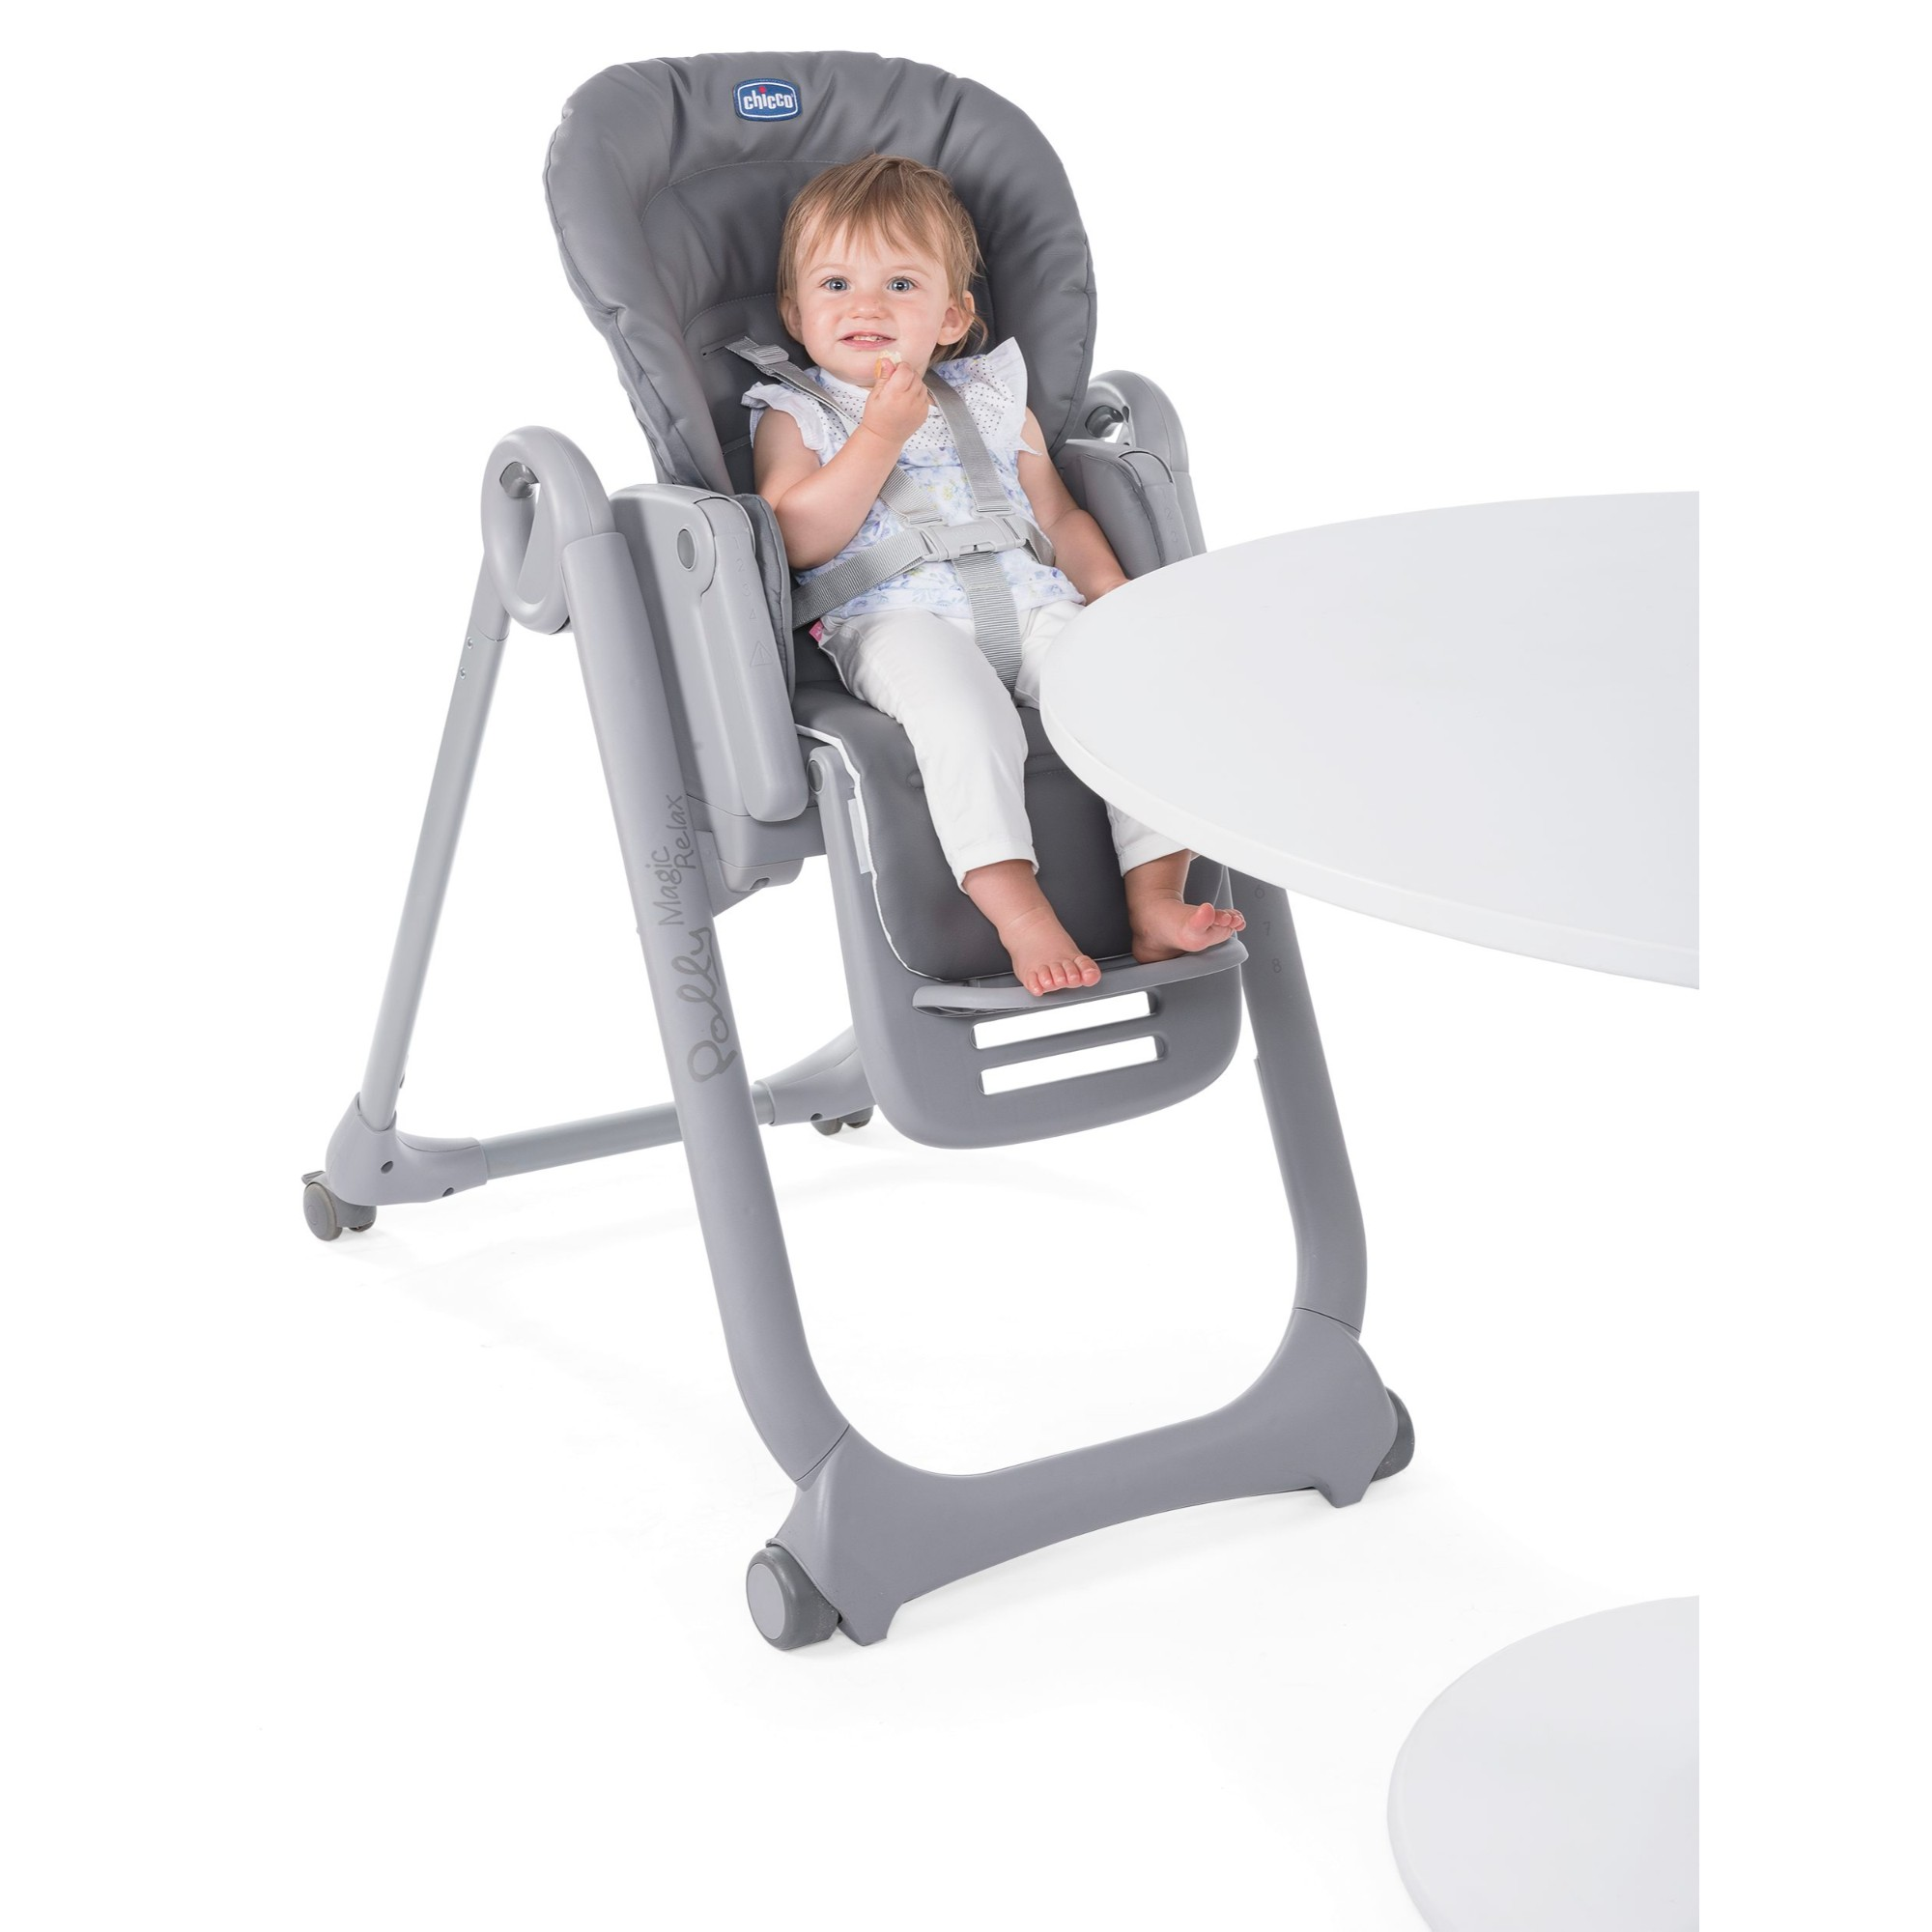 CHICCO ANTHRACITE POLLY PROGRES5 5 IN 1 BABY FEEDING ADJUSTABLE HIGHCHAIR